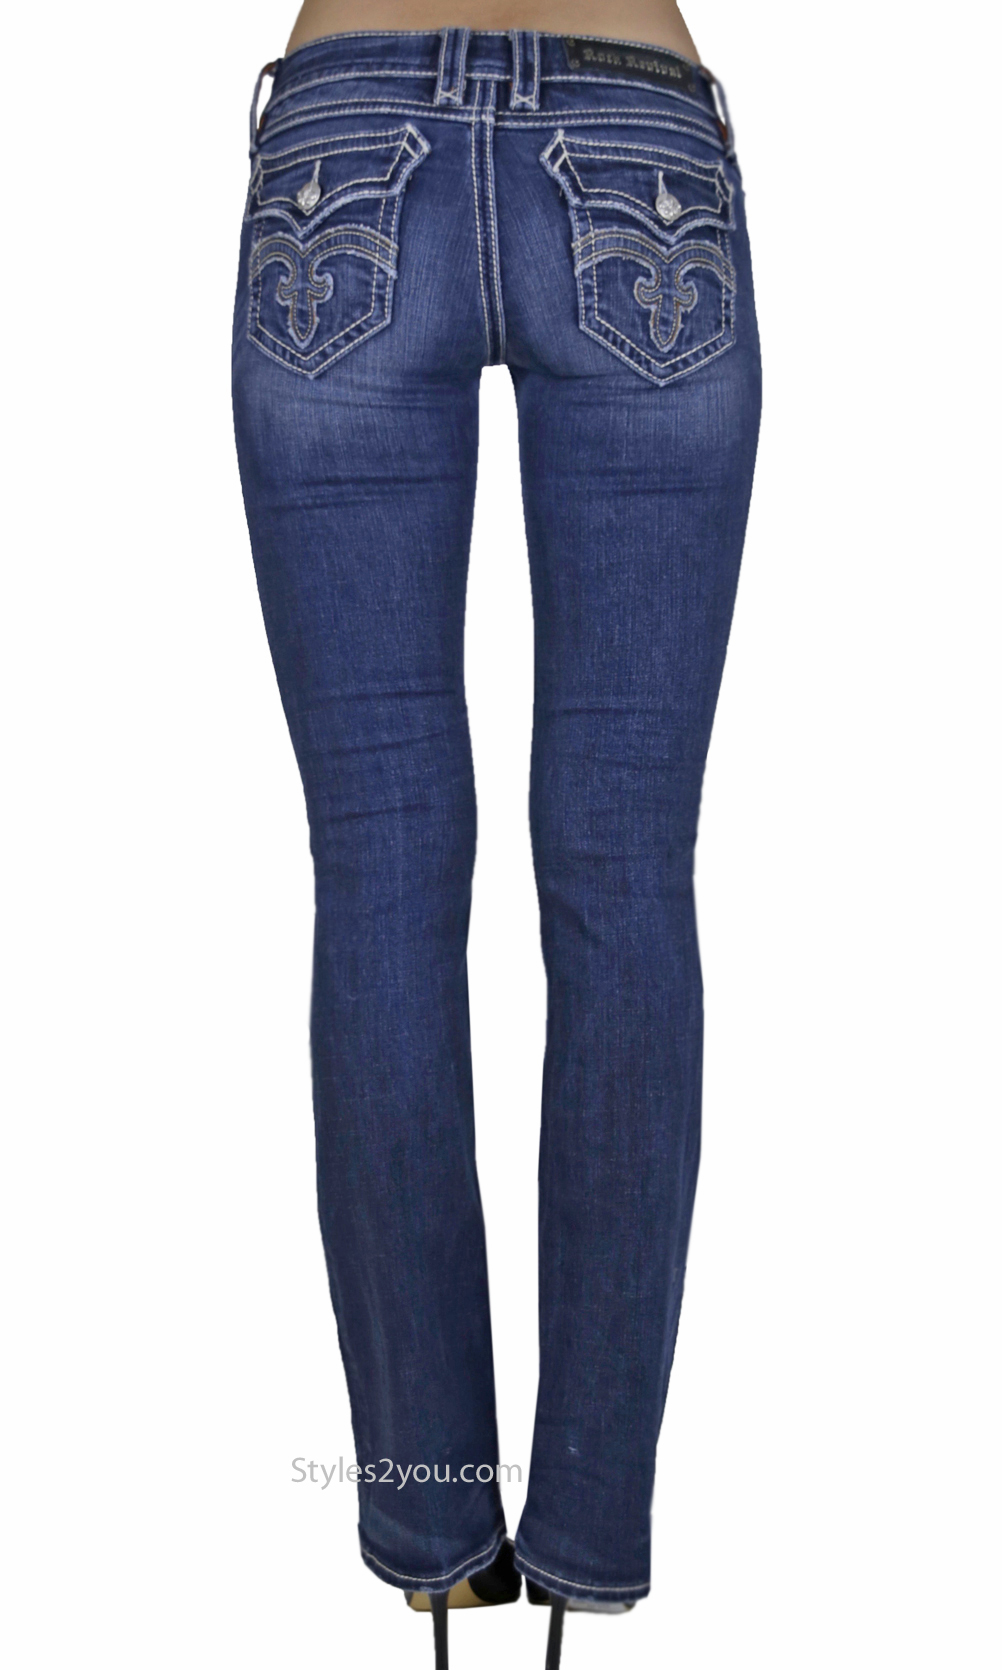 Debbie Ladies Bootcut Jeans Medium Blue Denim Rock Revival Jean · «